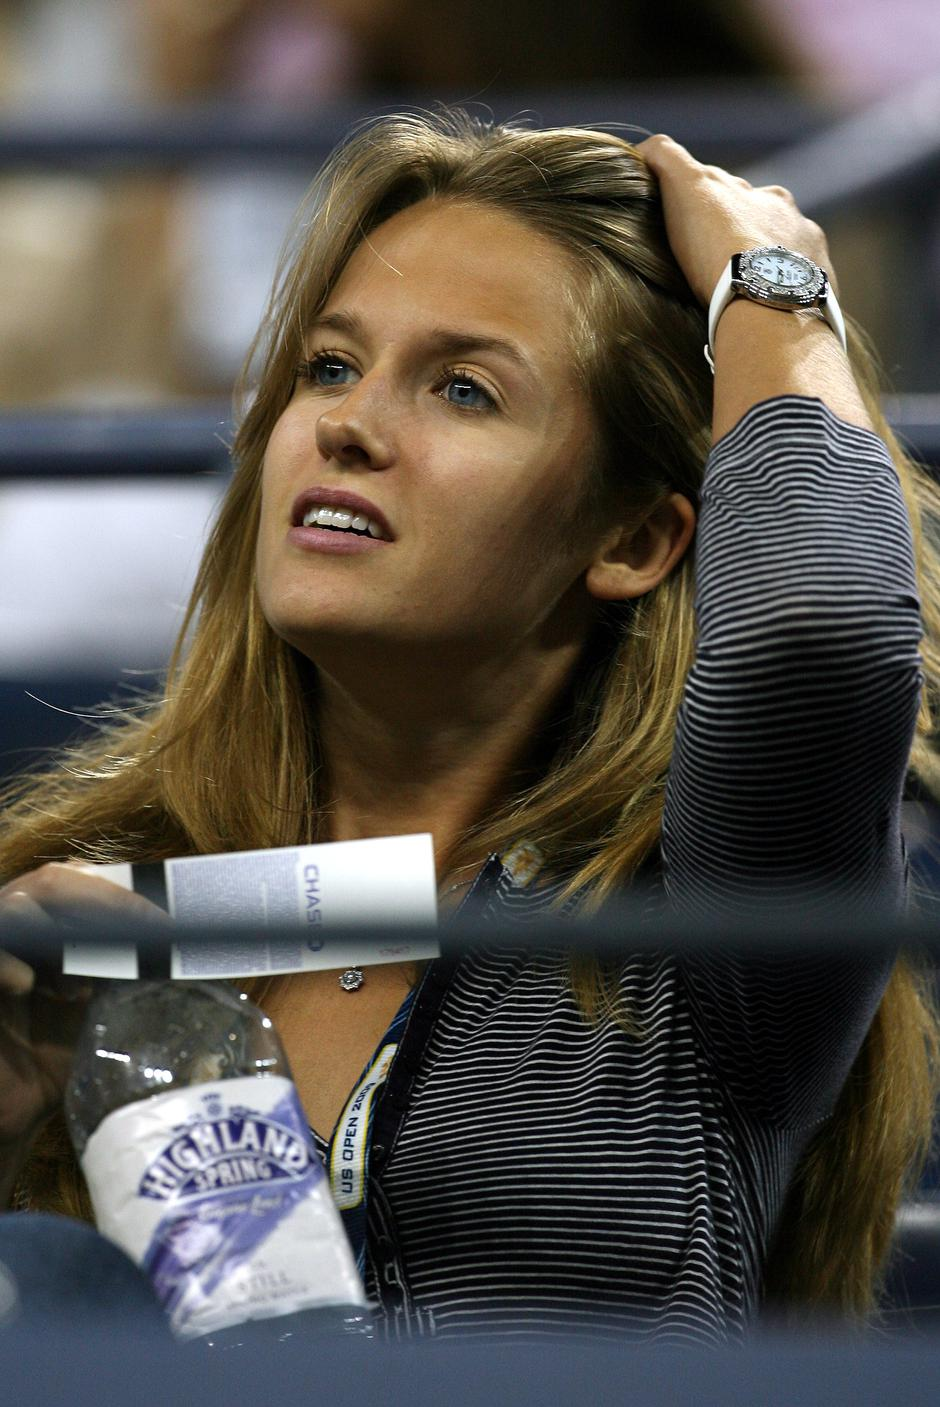 Tennis - 2009 US Open - Day Two - Flushing Meadows | Autor: PA Wire/Press Association/PIXSELL